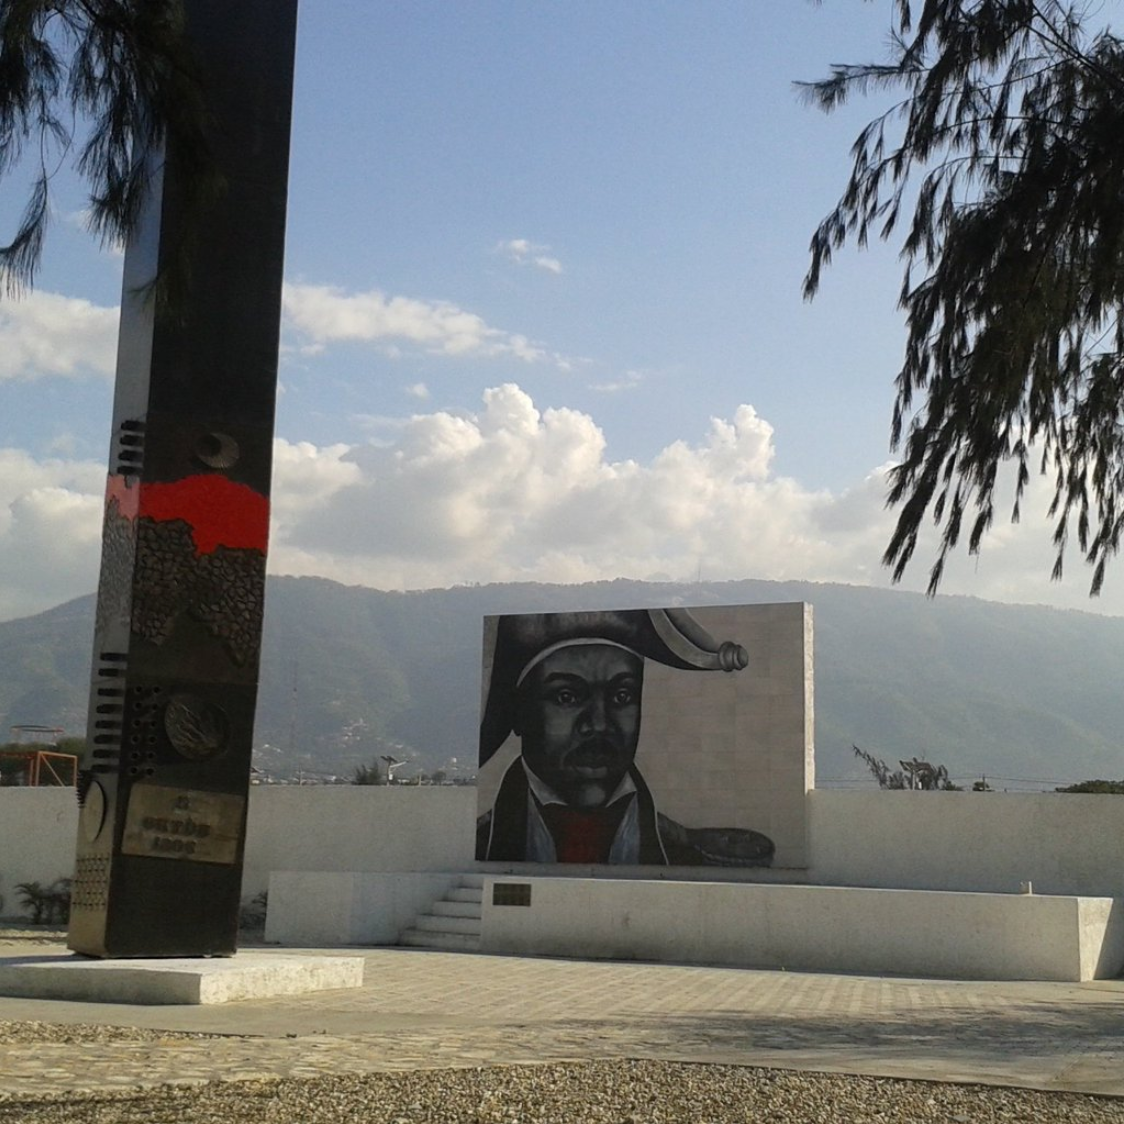 Dessalines Memorial document which features a portrait on a large wall.